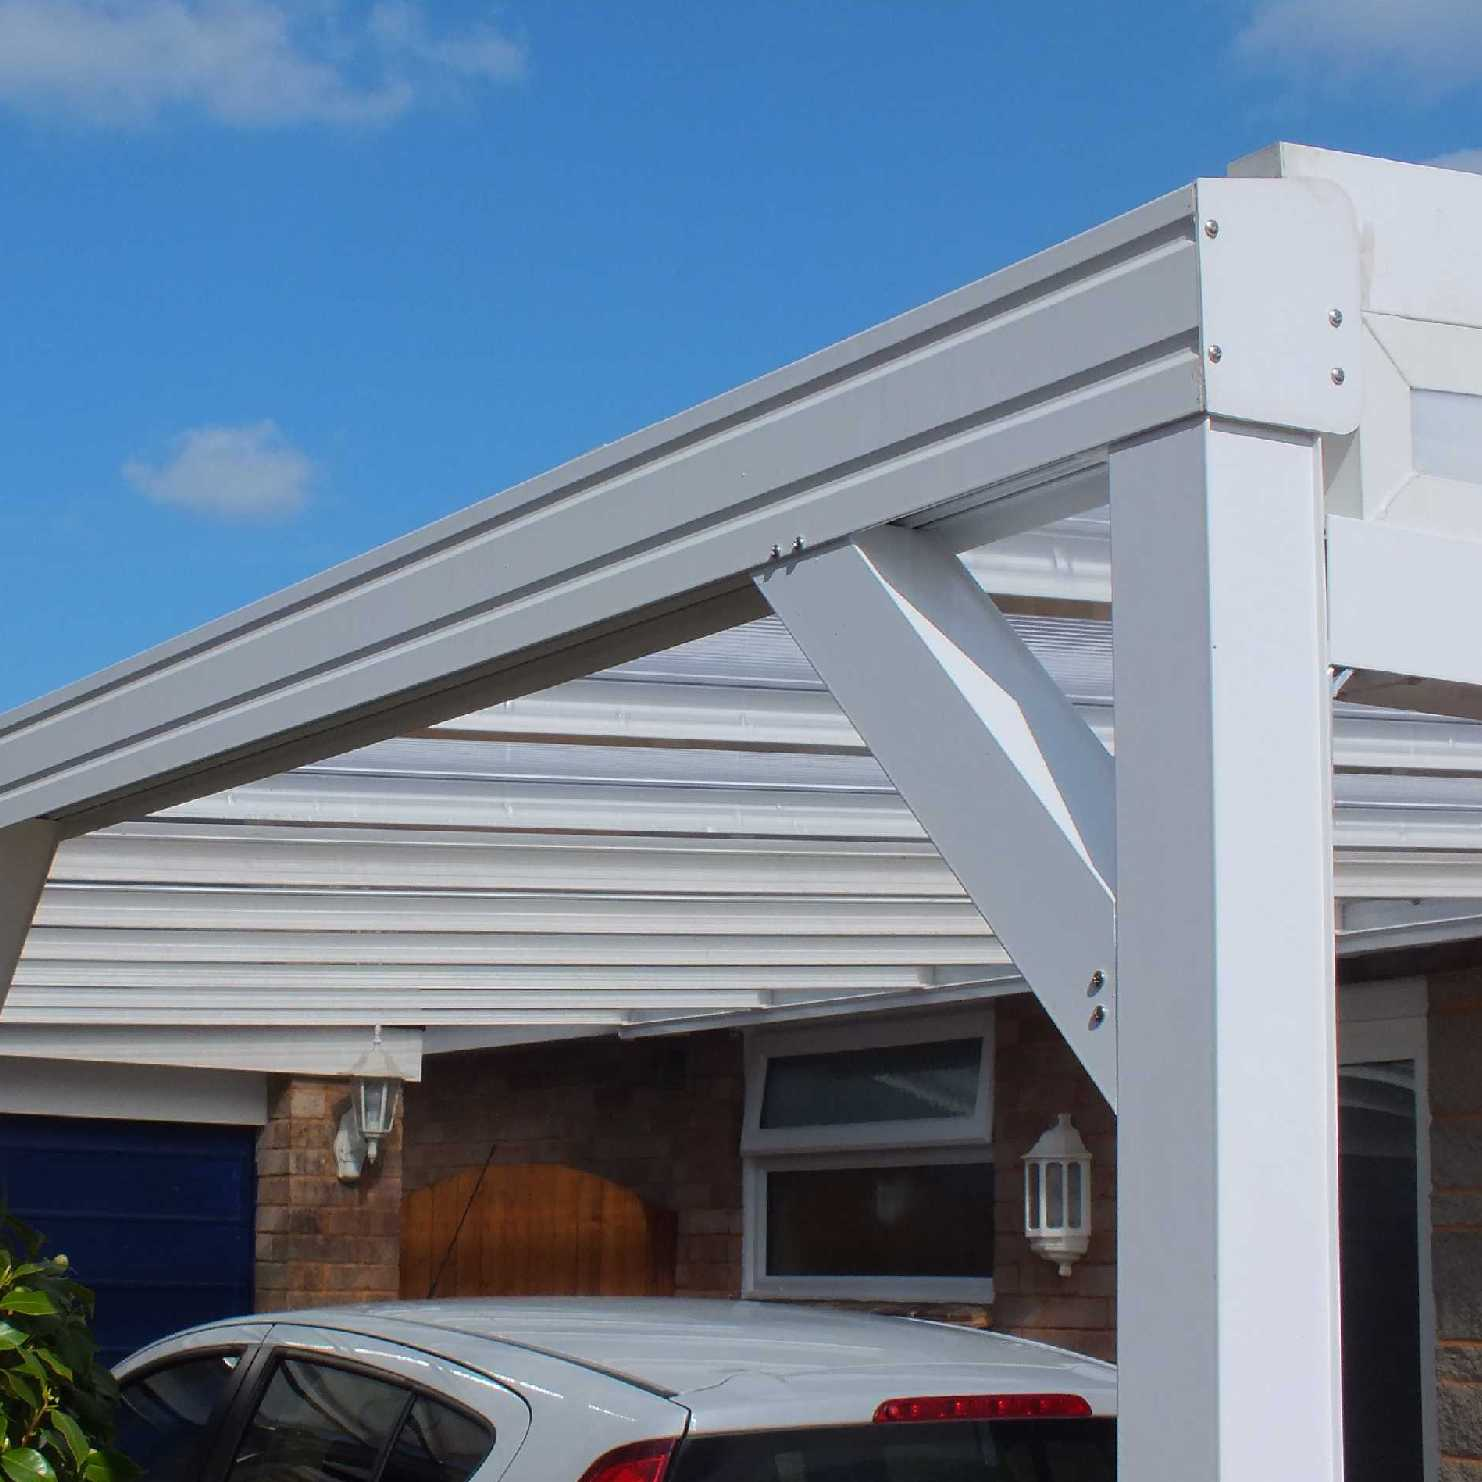 Great deals on Omega Smart Lean-To Canopy with 16mm Polycarbonate Glazing - 5.2m (W) x 2.5m (P), (3) Supporting Posts